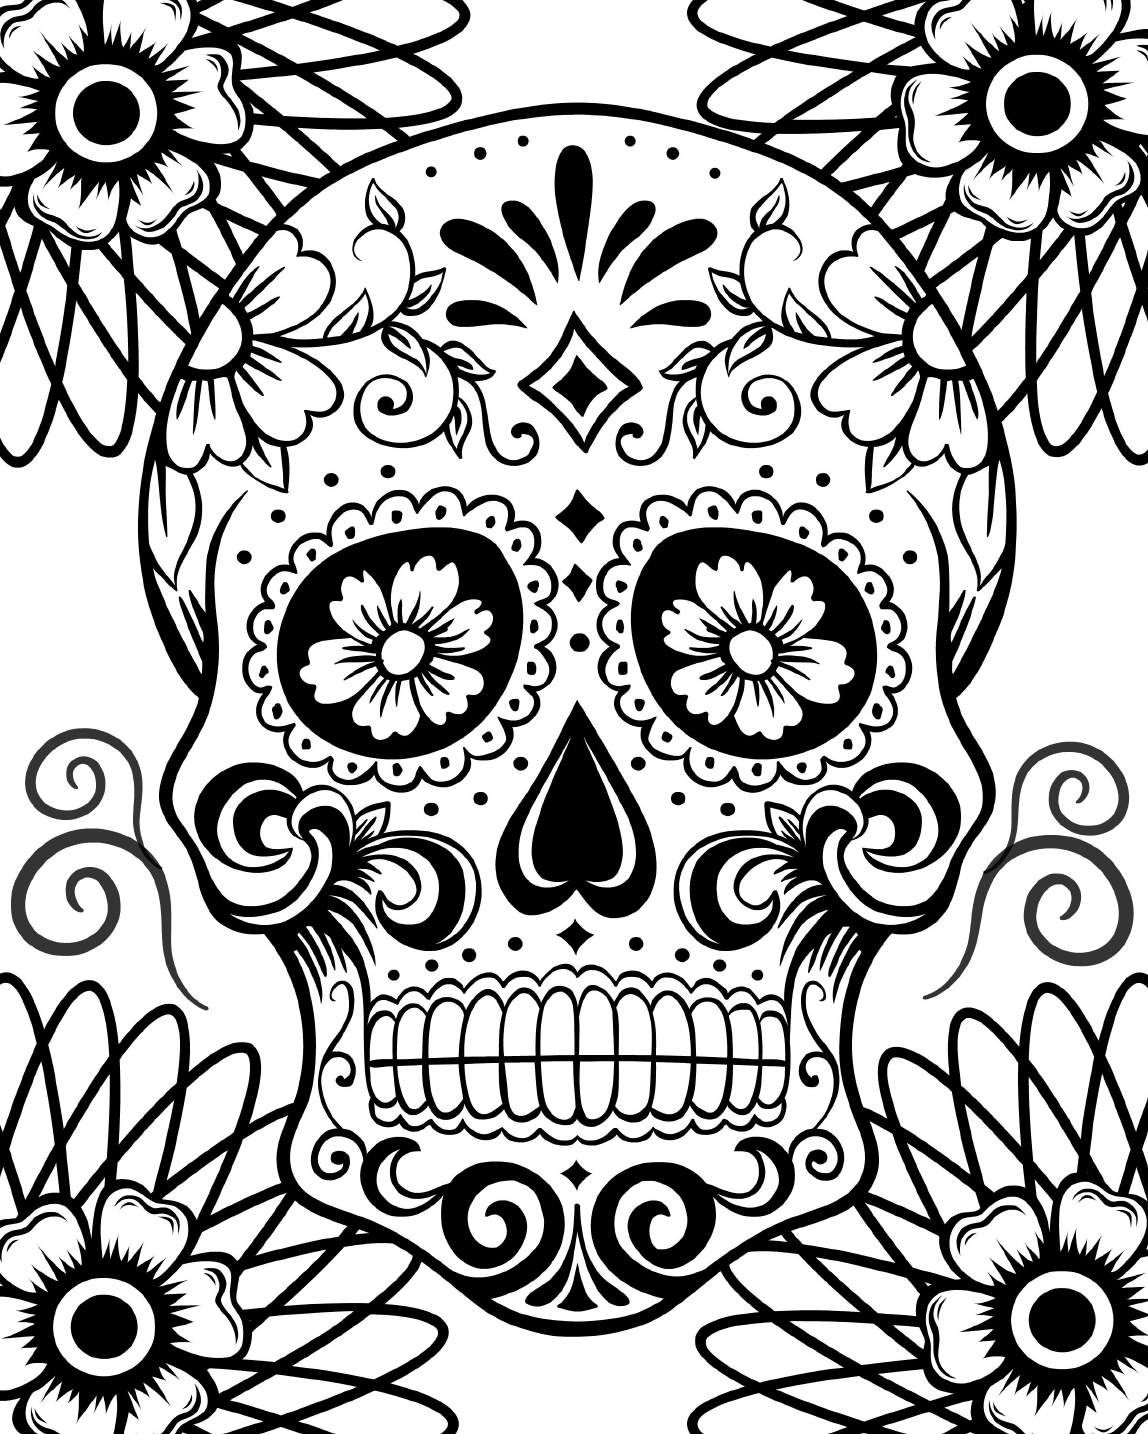 day of the dead coloring pages free get this day of the dead coloring pages online printable of pages day the coloring free dead